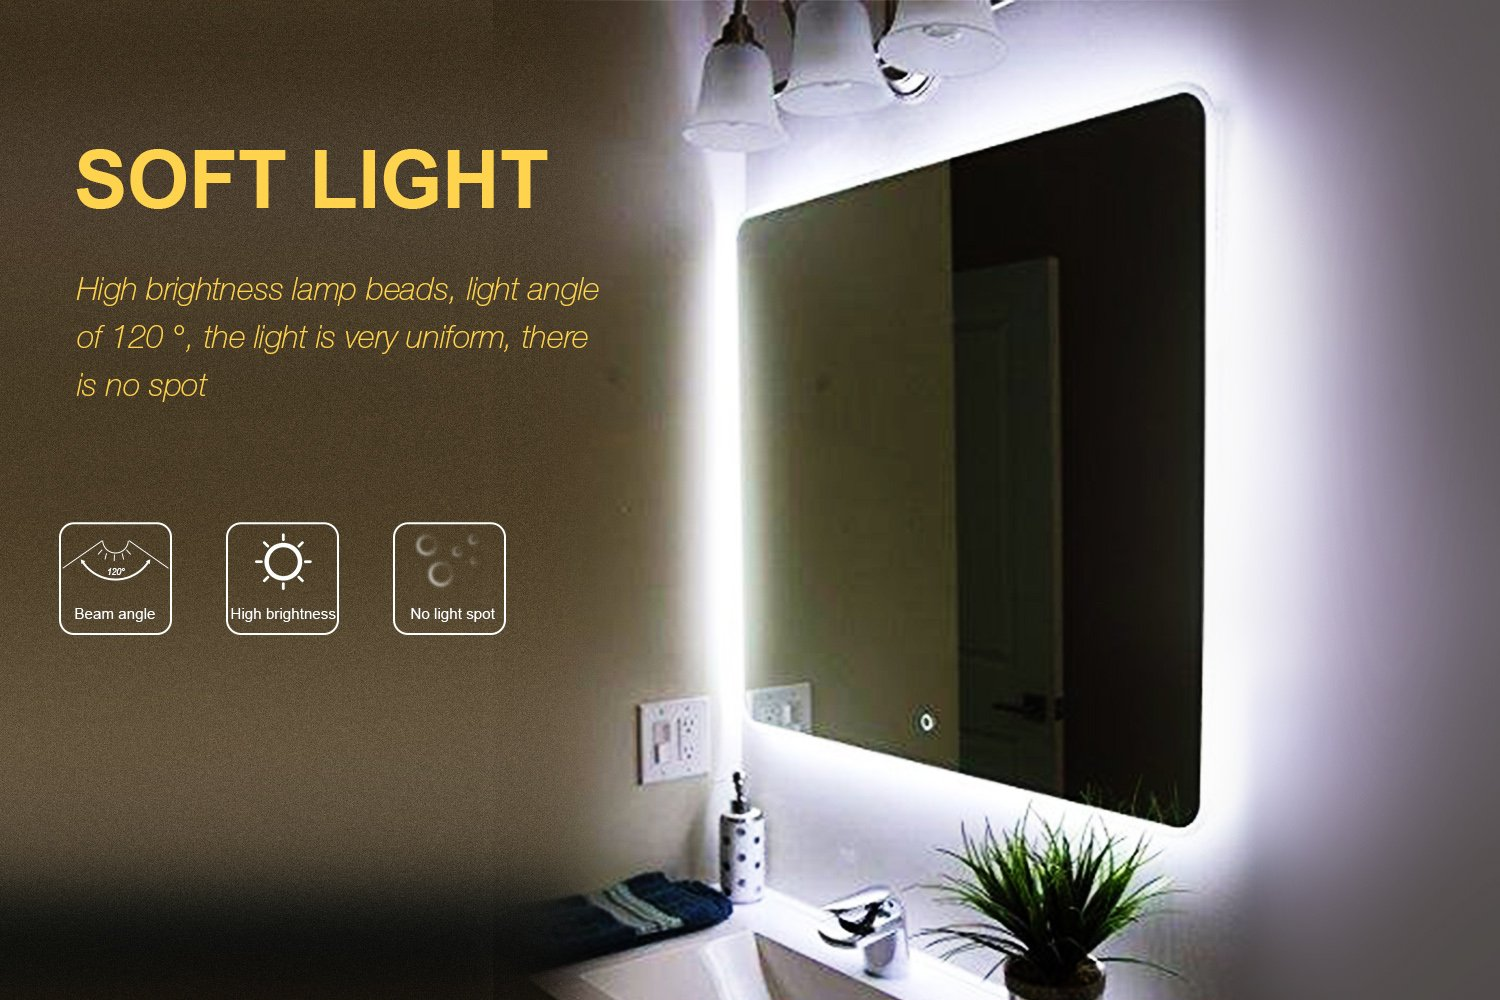 Led vanity mirror lights kitvilsom 13ft4m 240 leds make up vanity led vanity mirror lights kitvilsom 13ft4m 240 leds make up vanity mirror light for vanity makeup table set with dimmer and power supplymirror not mozeypictures Choice Image